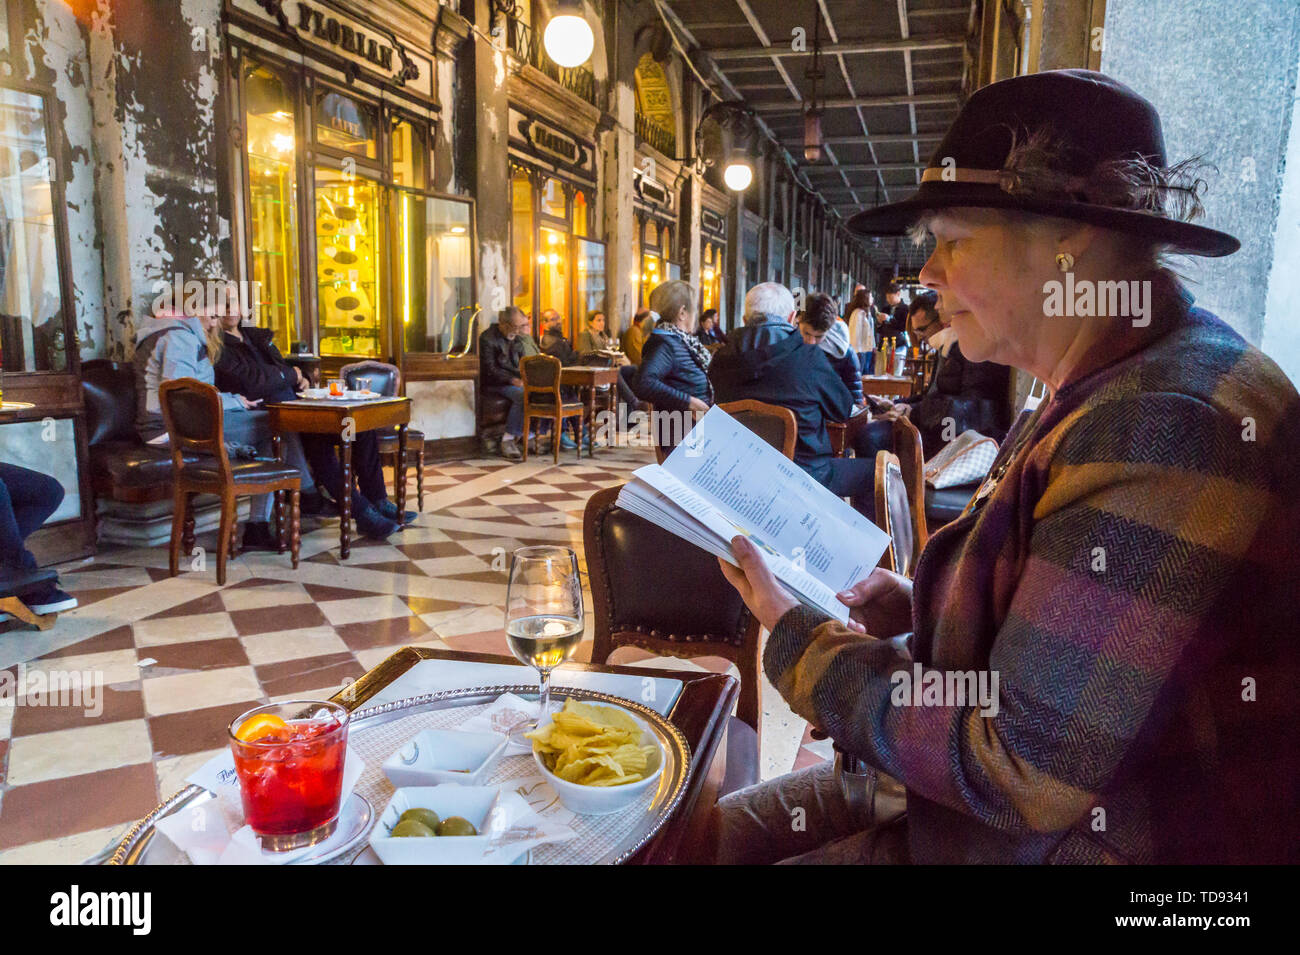 a-woman-looking-at-the-menu-at-caff-florian-st-marks-square-san-marco-venice-veneto-italy-TD9341.jpg